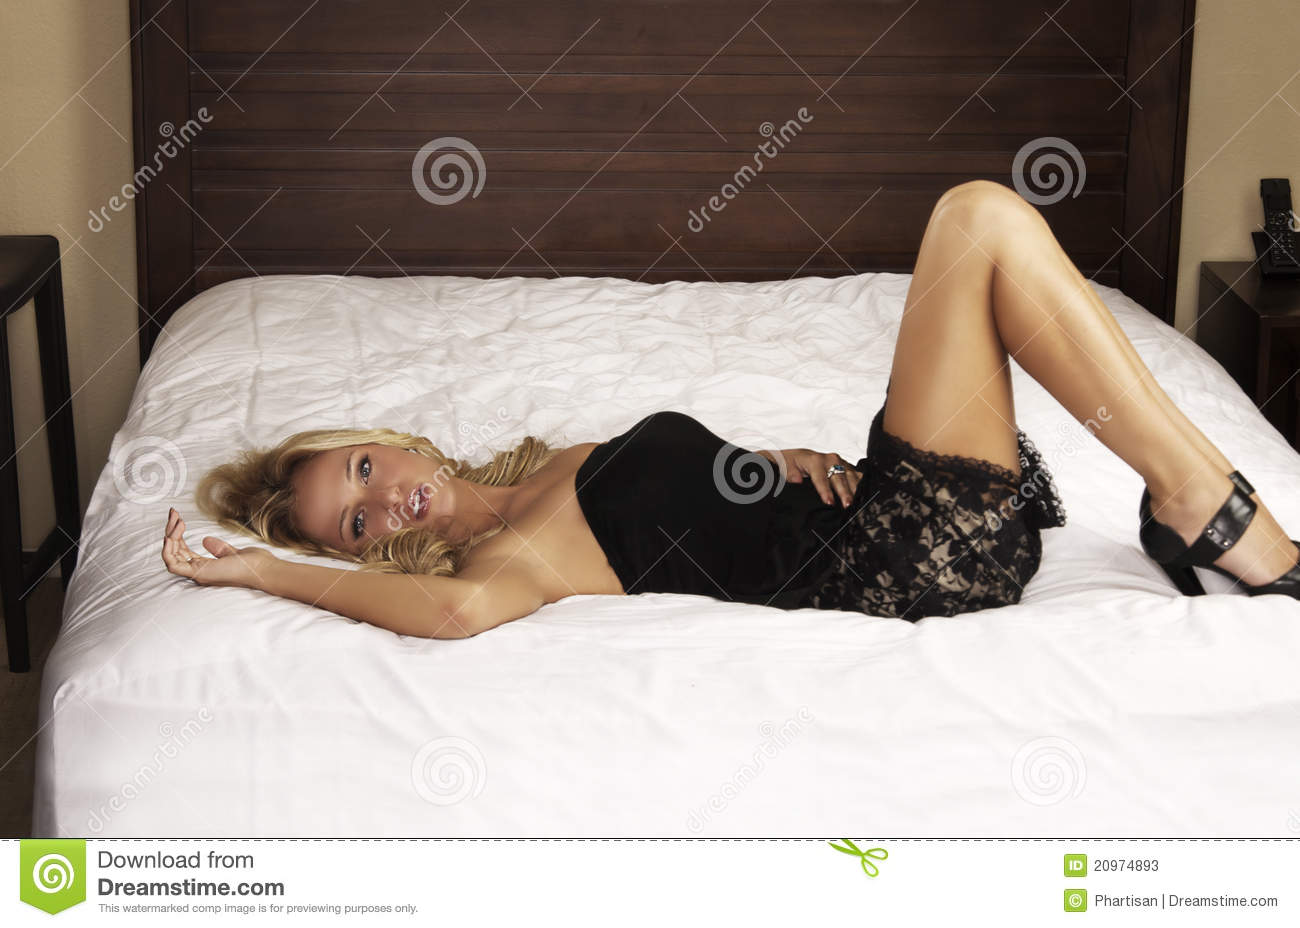 Amusing topic Hot naked girl lying in bed phrase